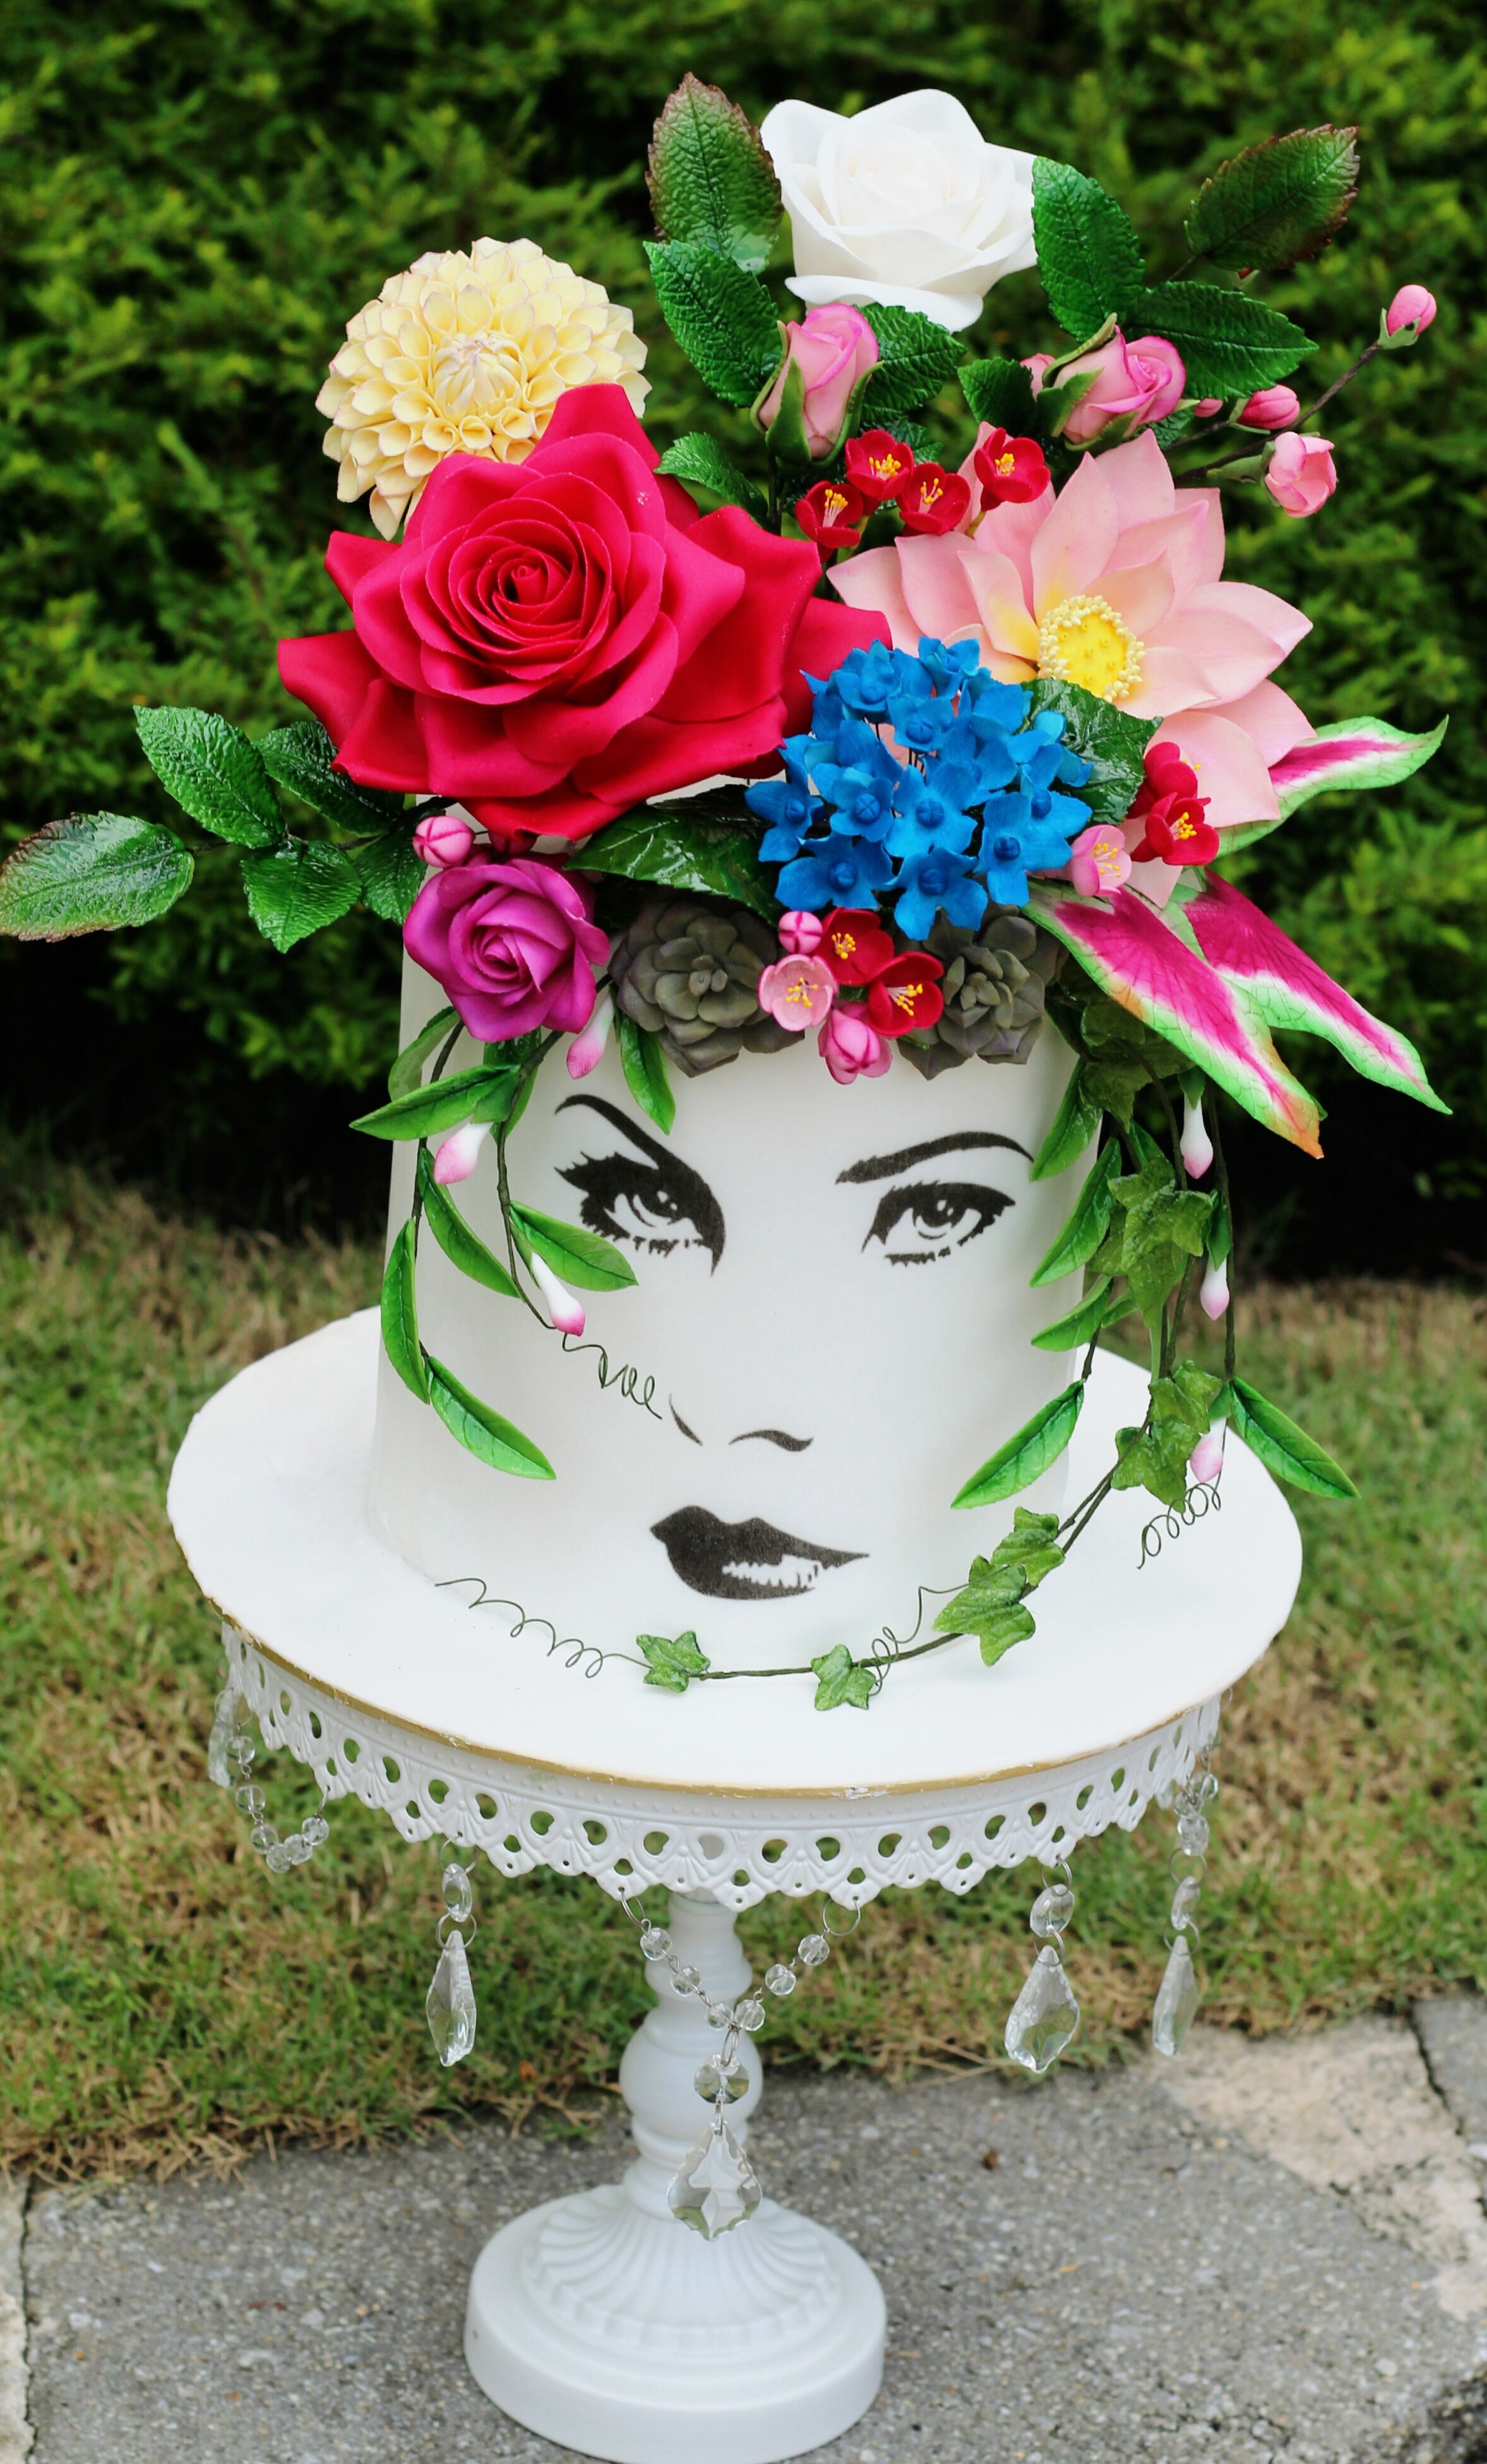 Hand painted face cake with sugar flower topper